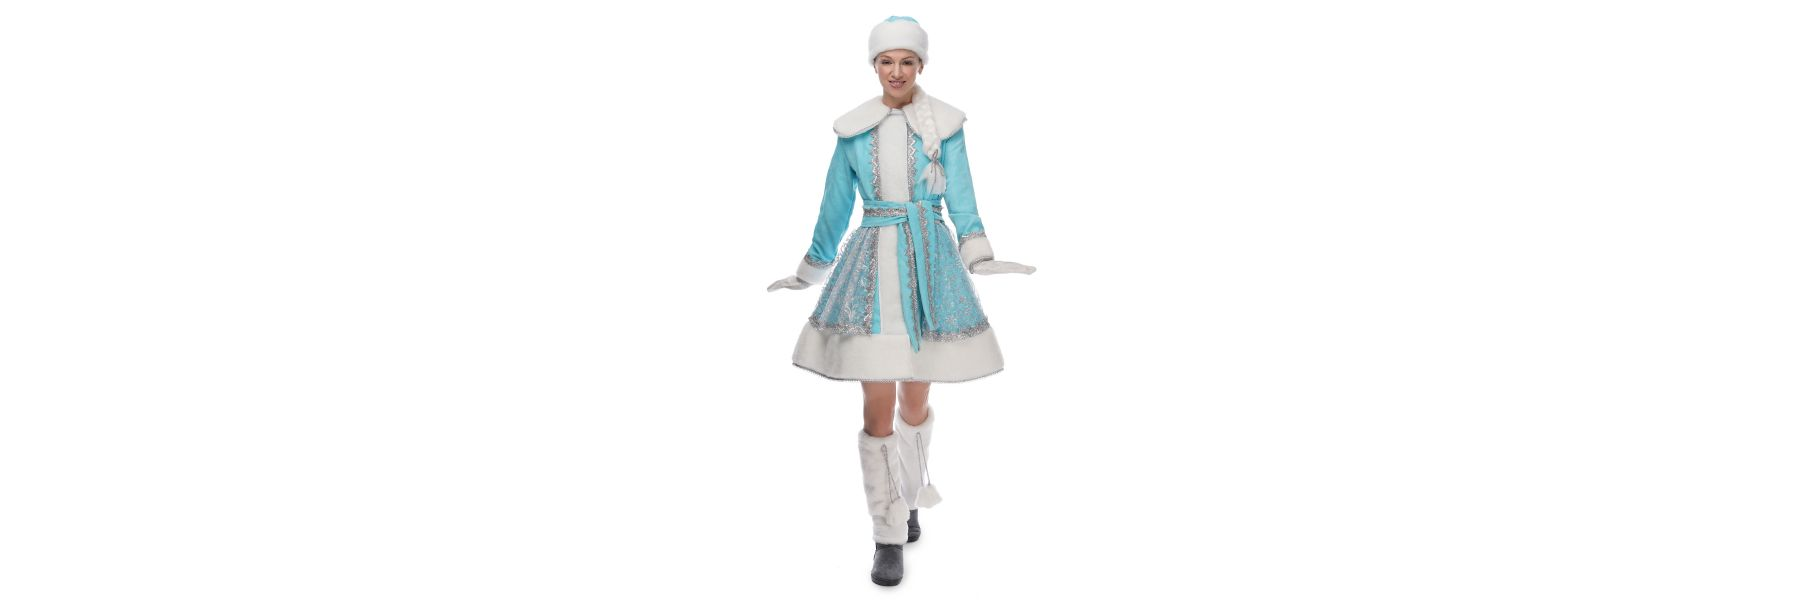 Creative or classic costume of the Snow Maiden: how to create an outfit for a gentle fairytale heroine